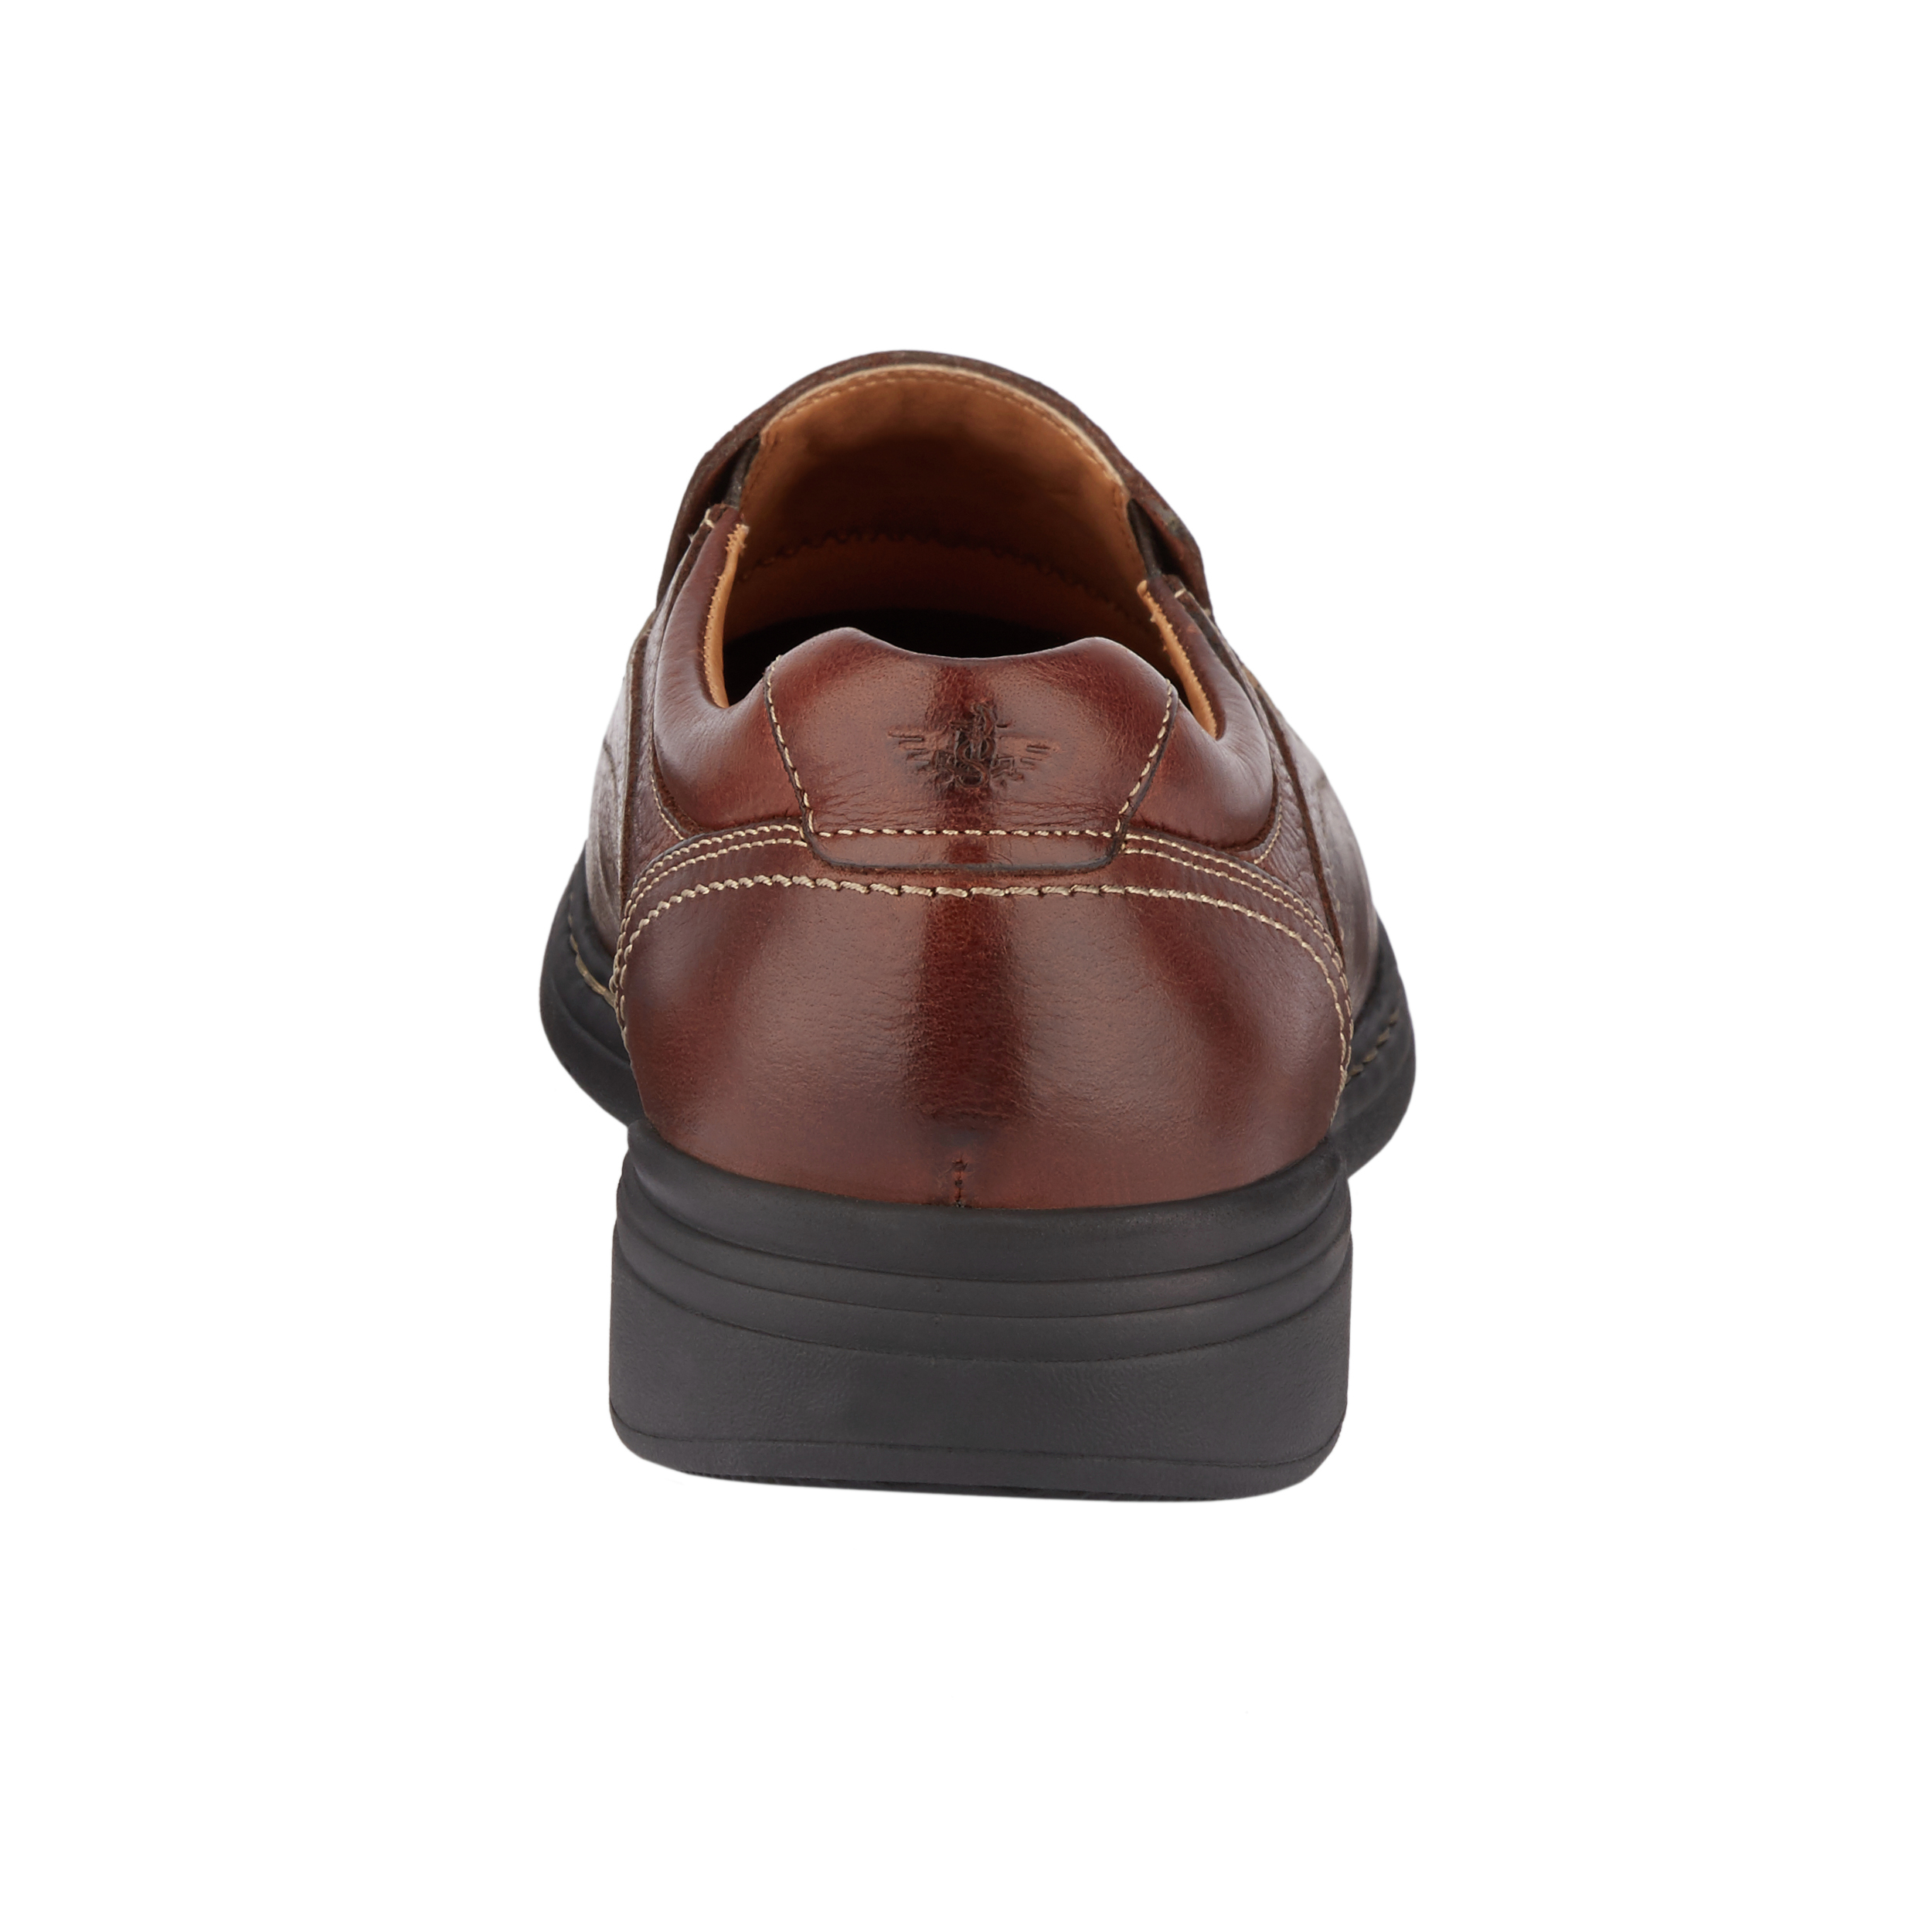 Dockers-Mens-Mosley-Genuine-Leather-Dress-Casual-Slip-on-Rubber-Sole-Shoe thumbnail 15